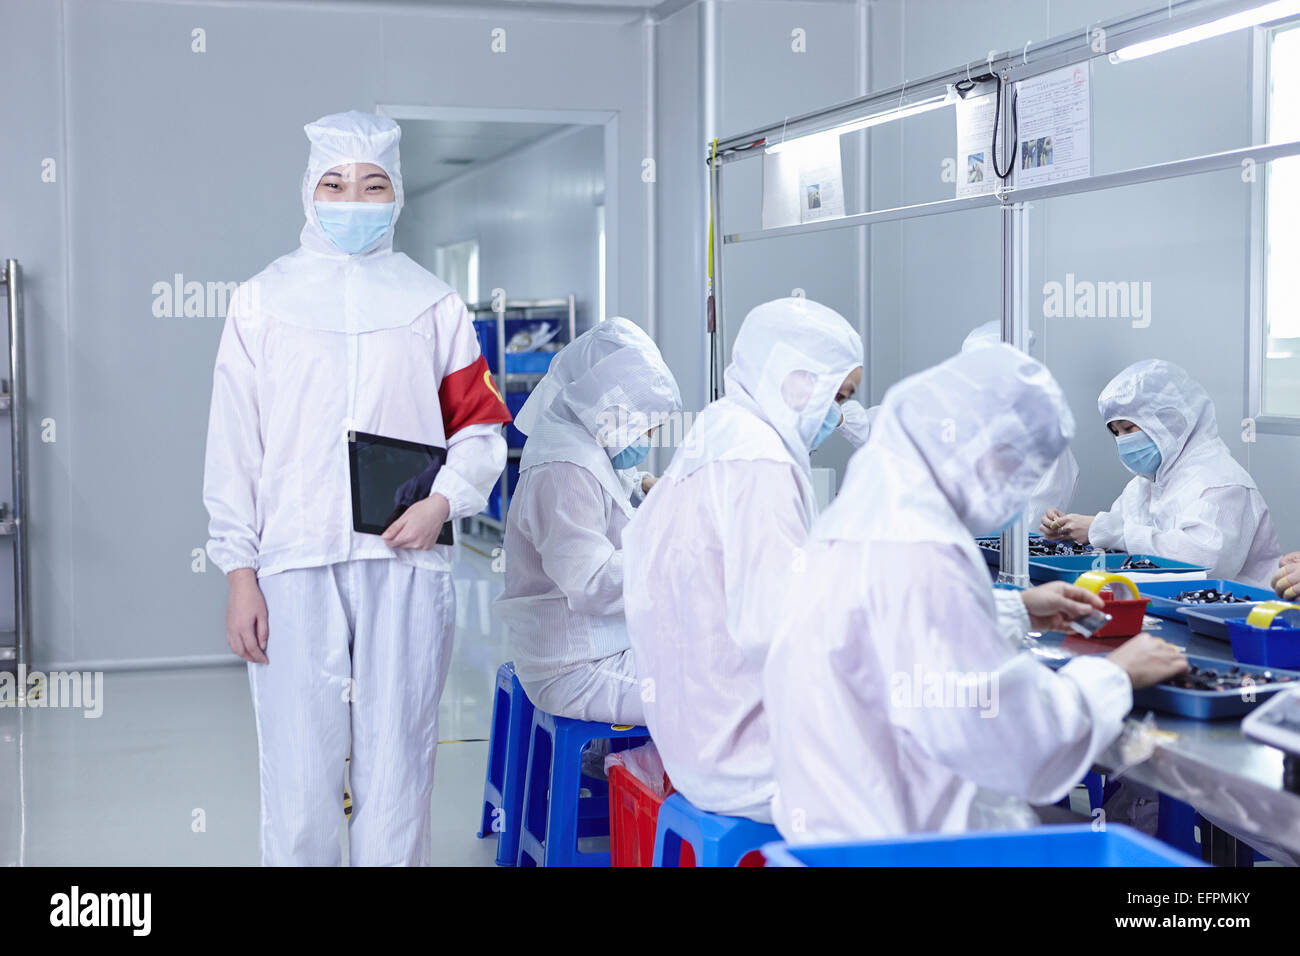 Workers in ecigarette factory - Stock Image